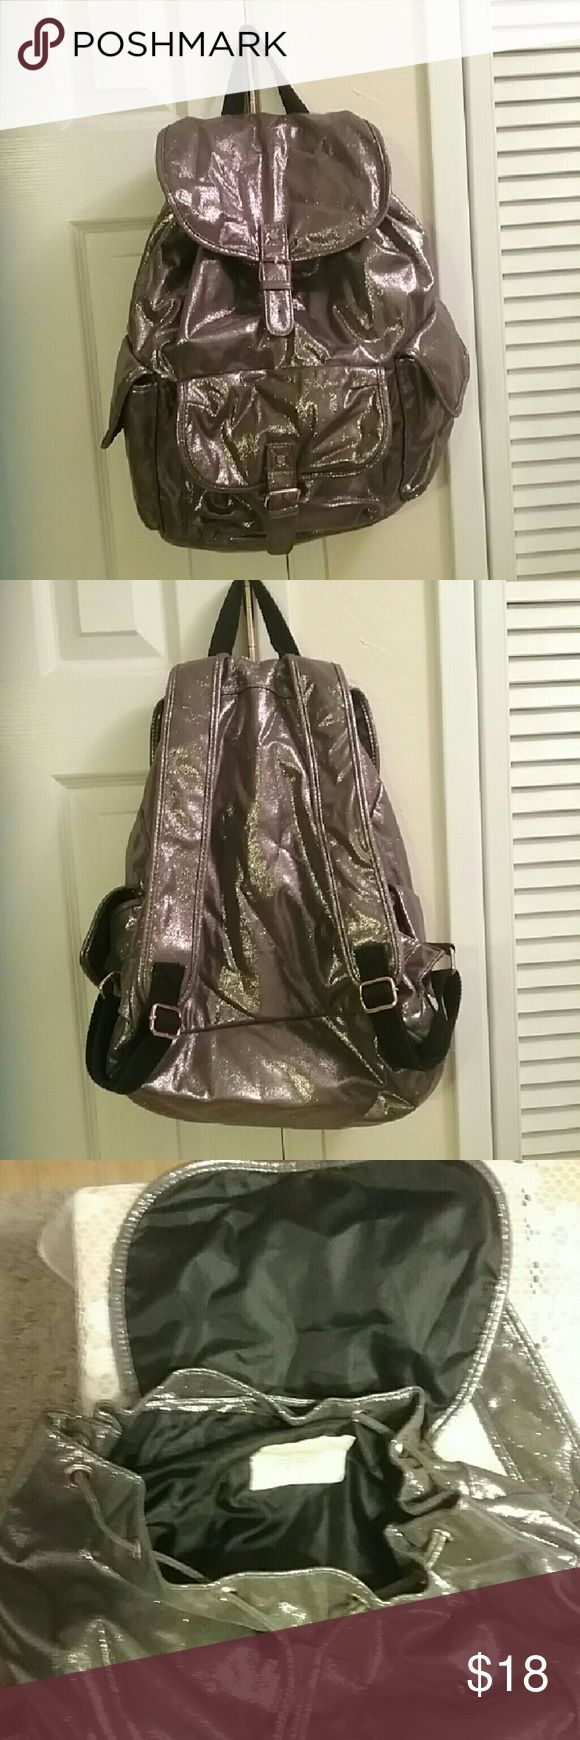 Shiny Silver Backpack- Live,Love,Dreams Collection Aeropostle Live,Love,Dreams Collection cute & stylish backpack- NEW condition used once. Many pockets, quality designer style..  BUNDLE & SAVE Aeropostale Bags Backpacks